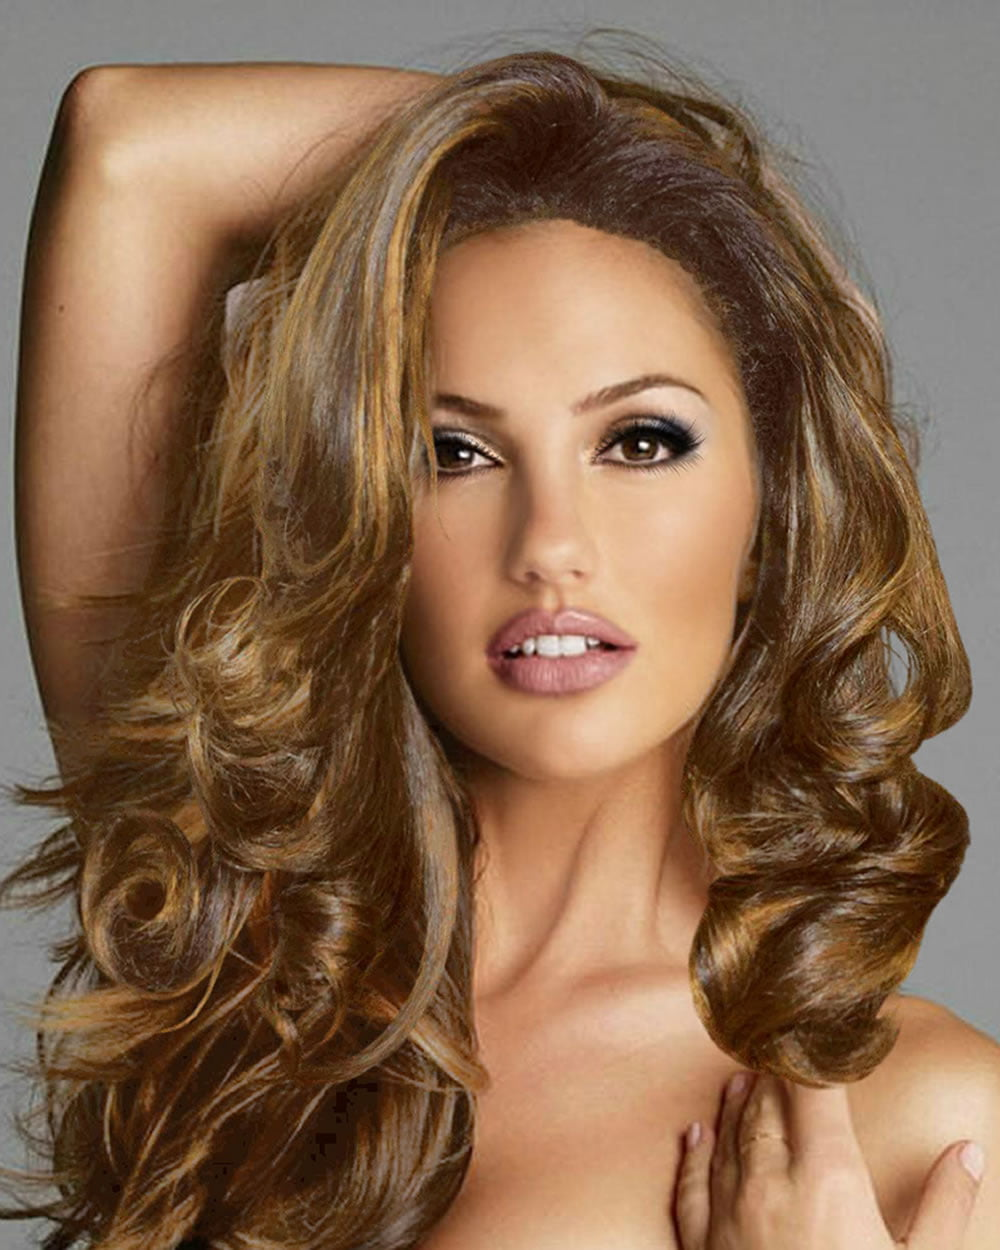 Ideas of long hairstyles with highlights and lowlights of light brown and black color